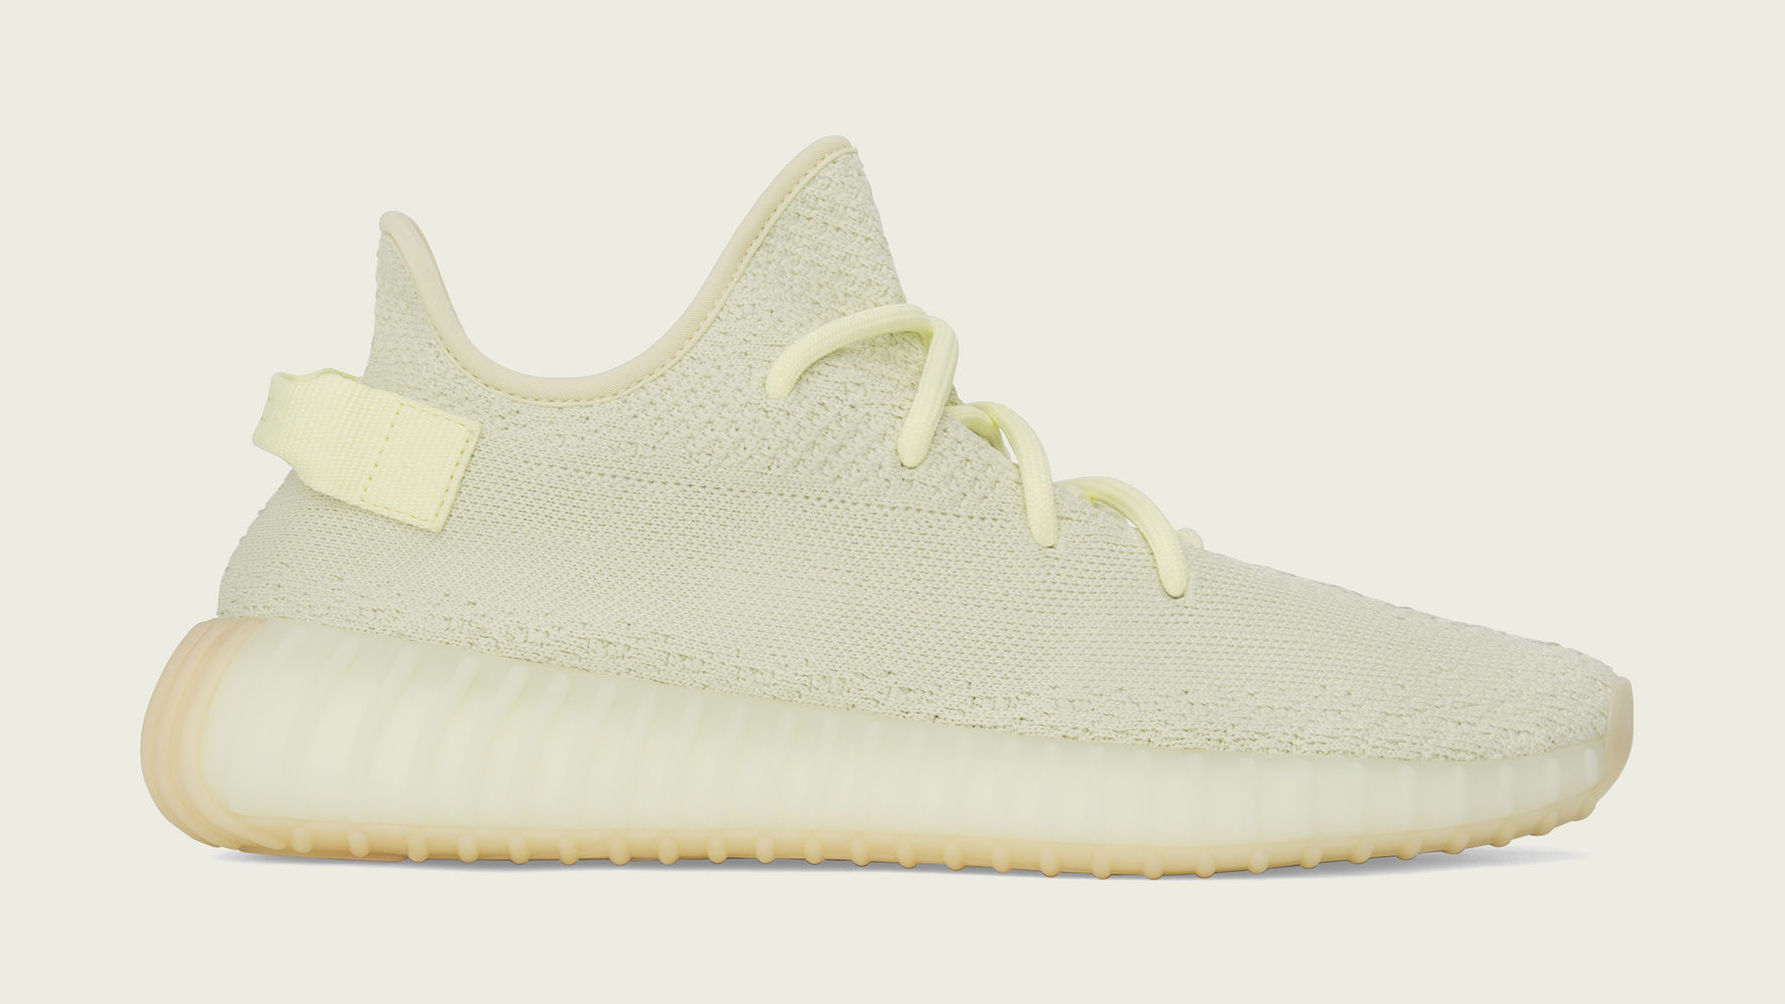 fad562ecec8a9 Adidas Yeezy Boost 350 V2  Butter  F36980 January 2018 Release Date ...